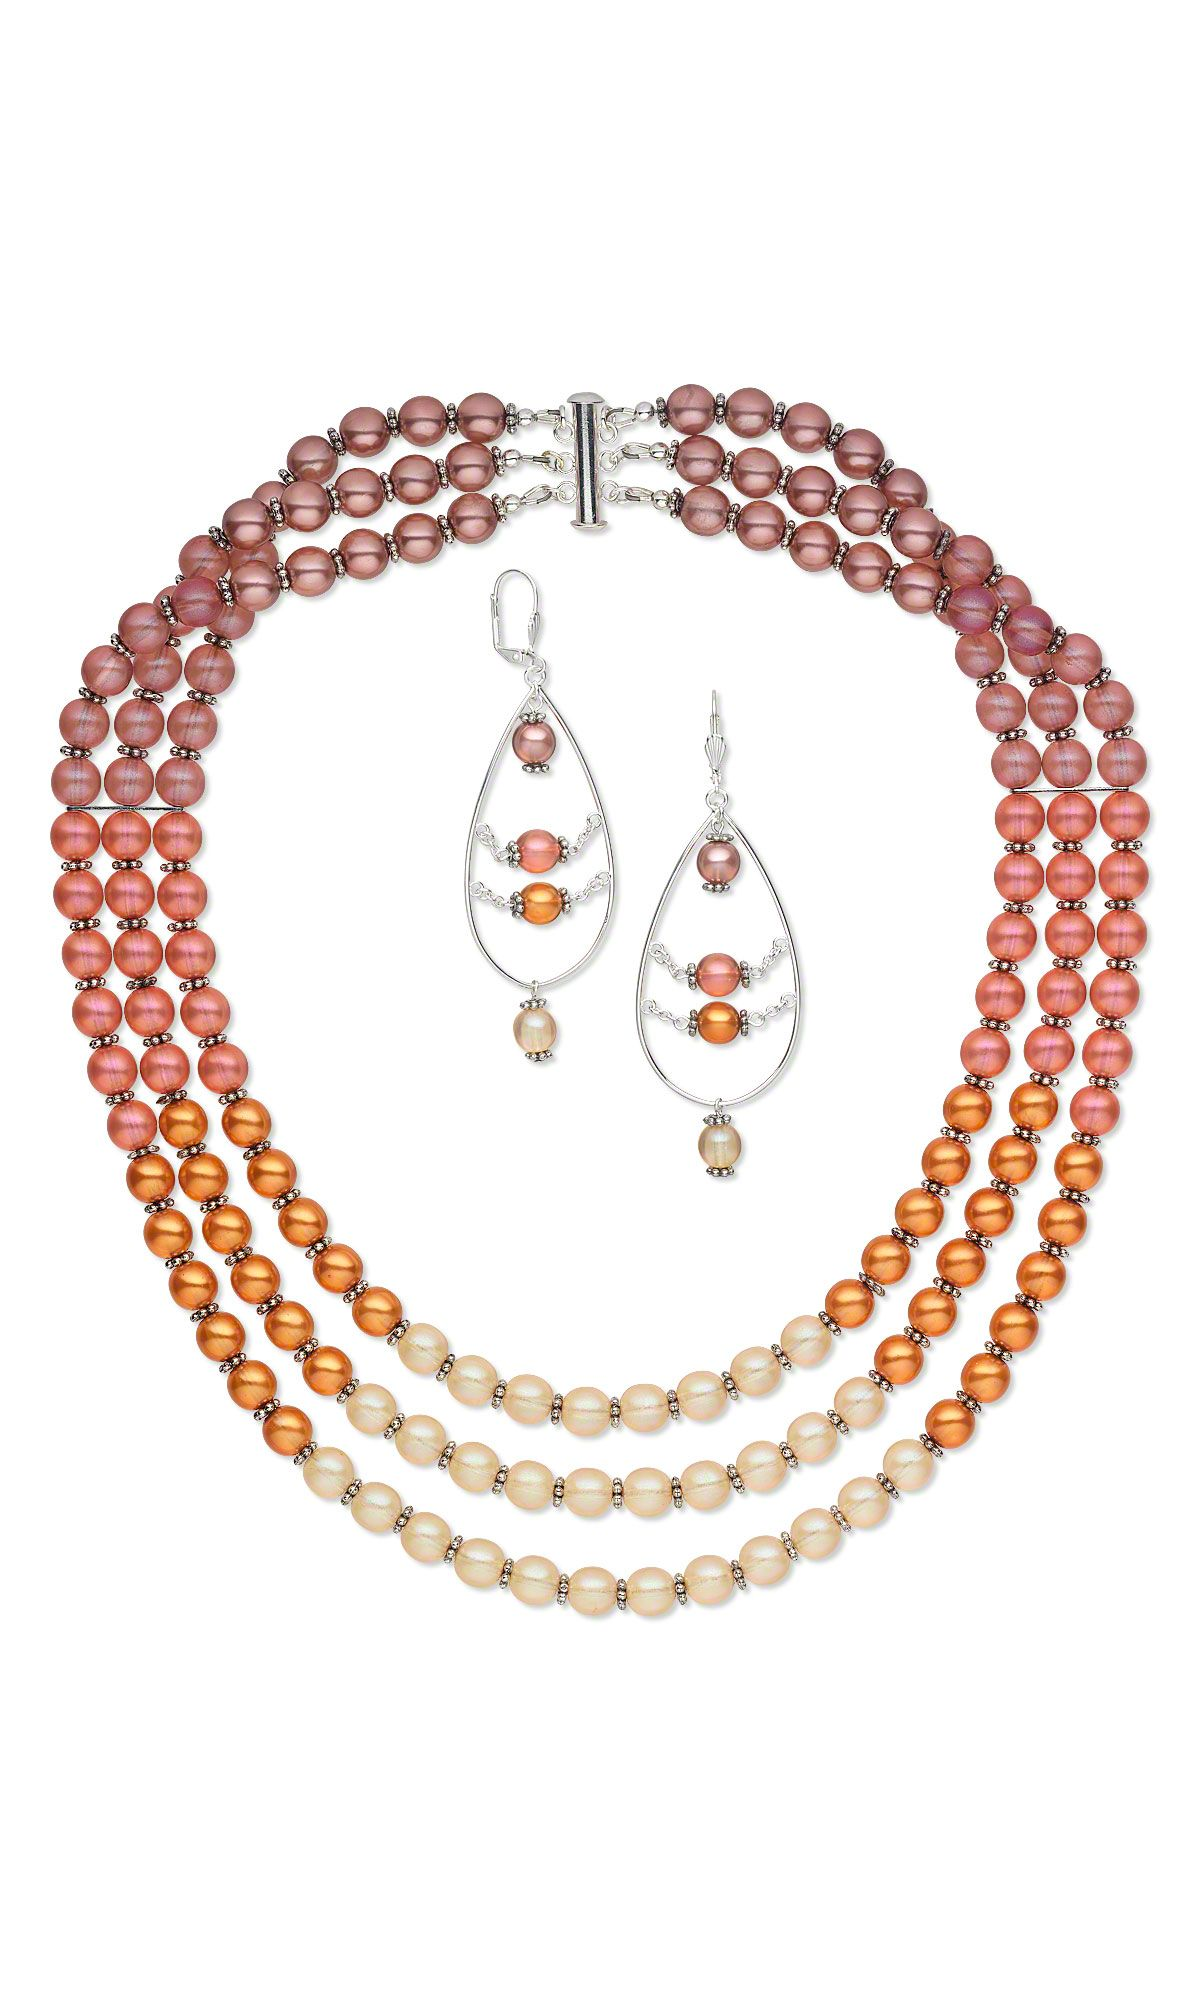 jewelry design triple strand necklace and earring set with czech